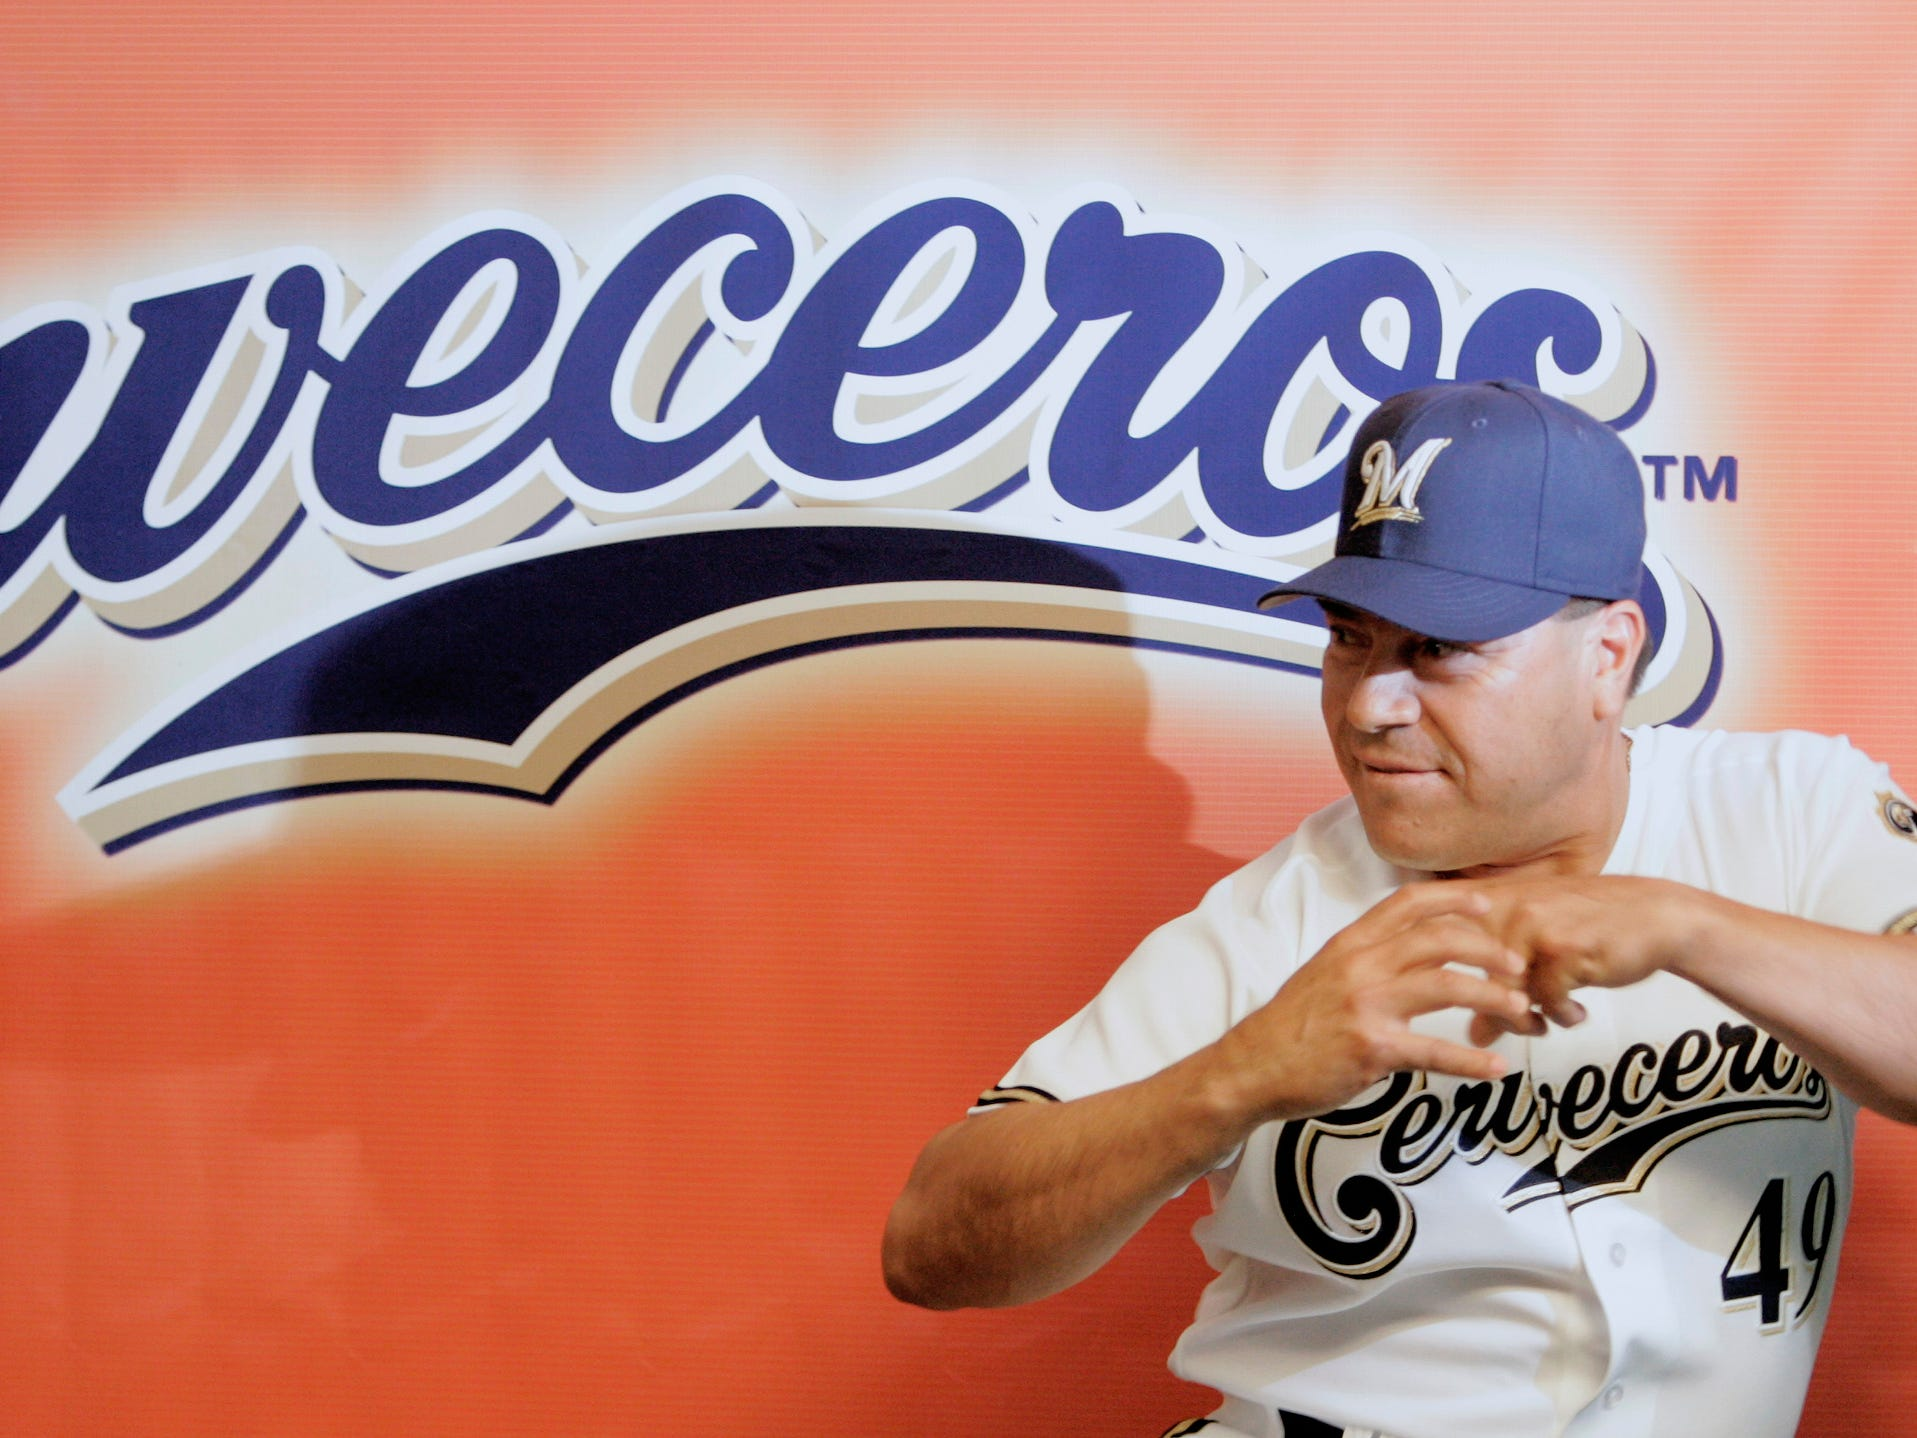 Former Milwaukee Brewers pitcher Teddy Higuera strikes a pitching pose during a press conference to announce the details of 2 events that will pay tribute to legendary African-American and Hispanic players who made contributions to baseball in 2006.